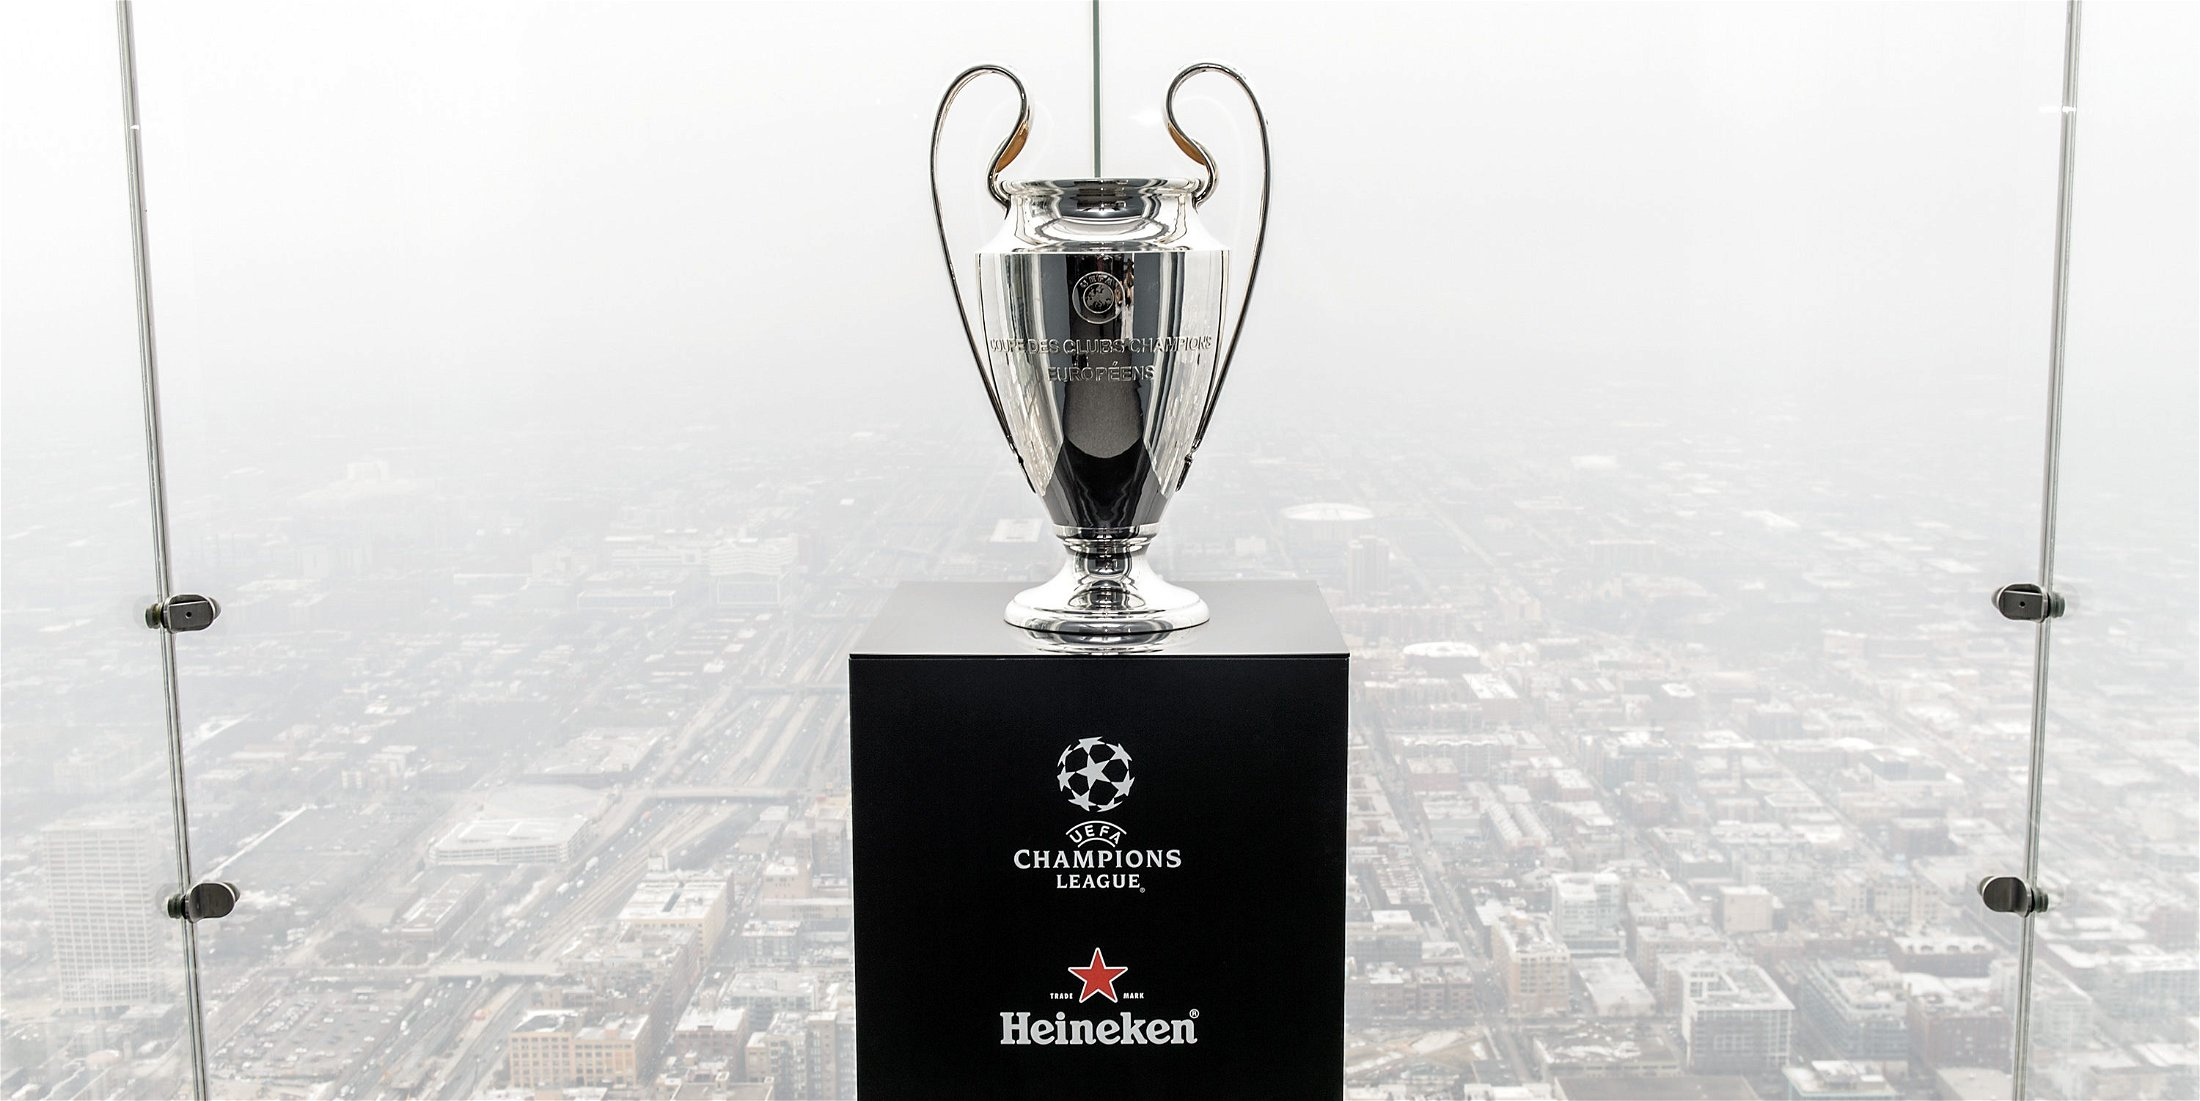 uefa champions league trophy logo uefa champions league trophy logo